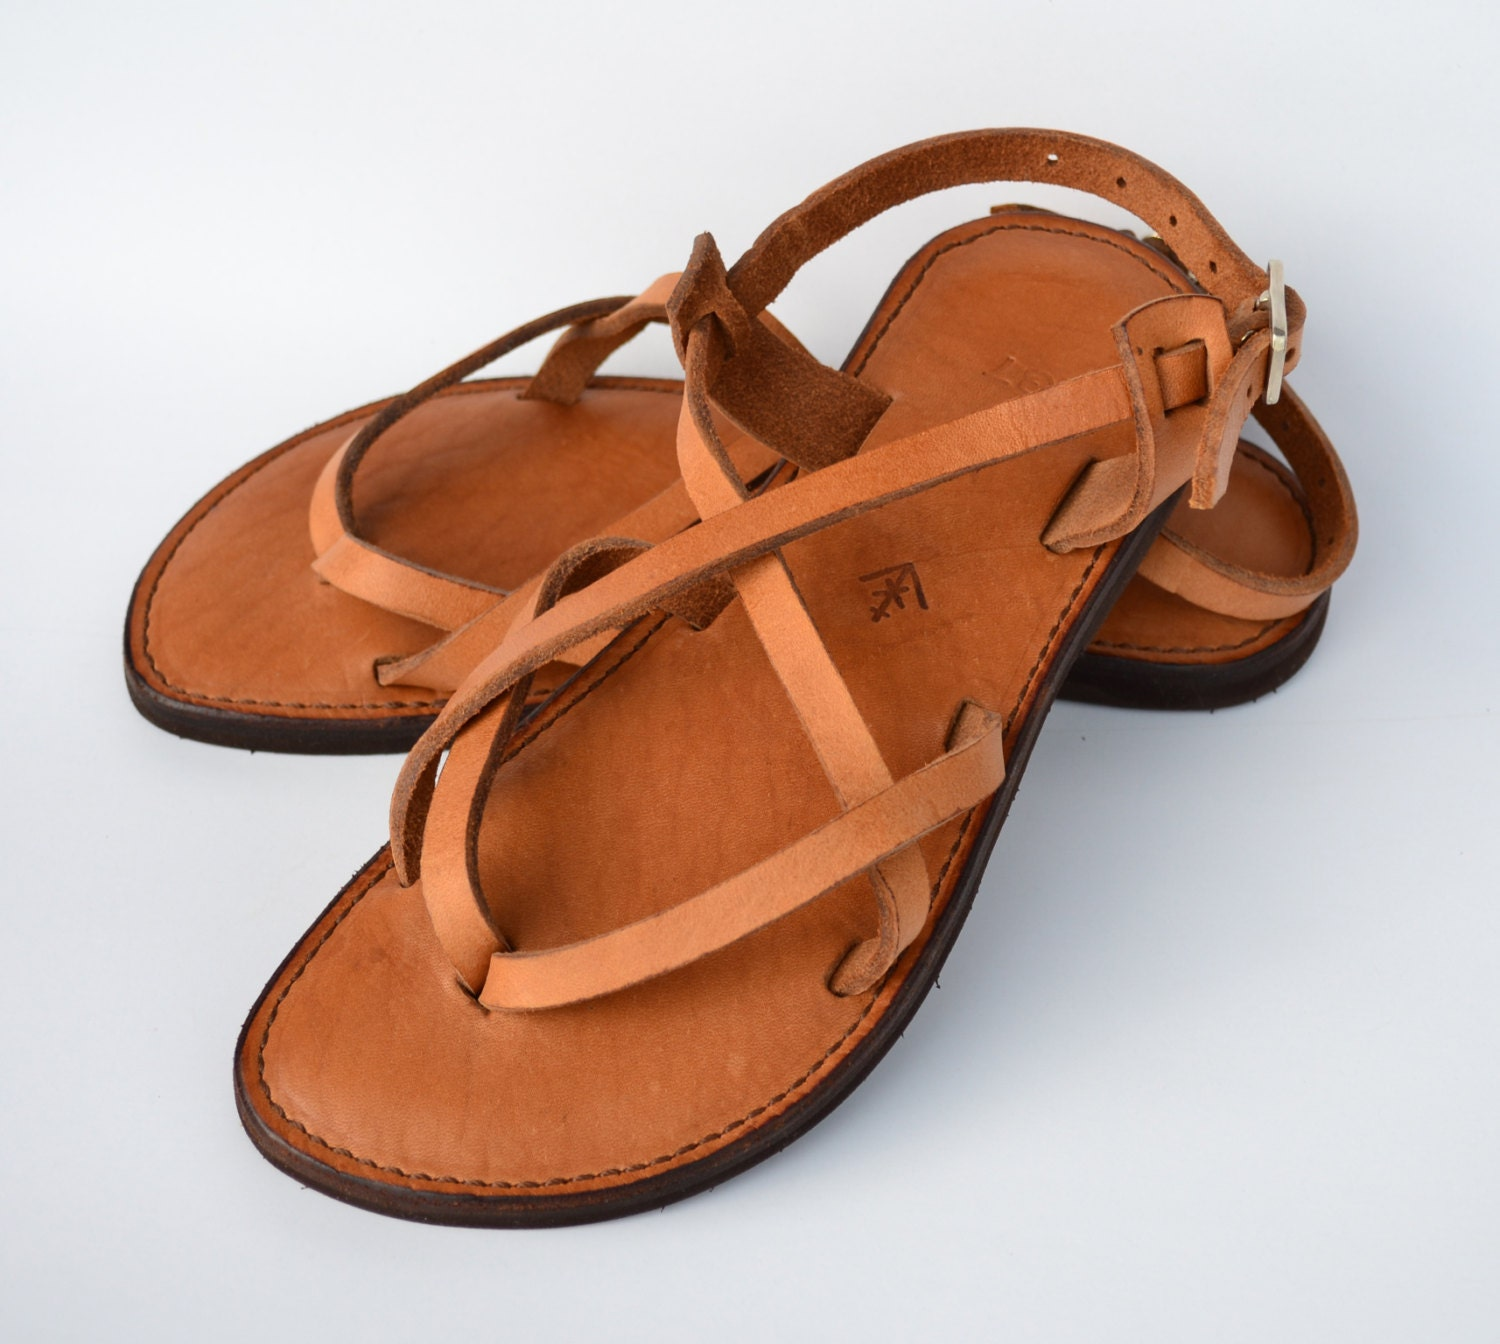 Mens Leather Sandals Warm sun, crashing waves and an ocean breeze—nothing goes better with a relaxing walk on the beach than a good pair of men's leather sandals. Dust off the sand, pull on a pair of linen slacks and a fitted shirt and then take these versatile shoes to dinner.